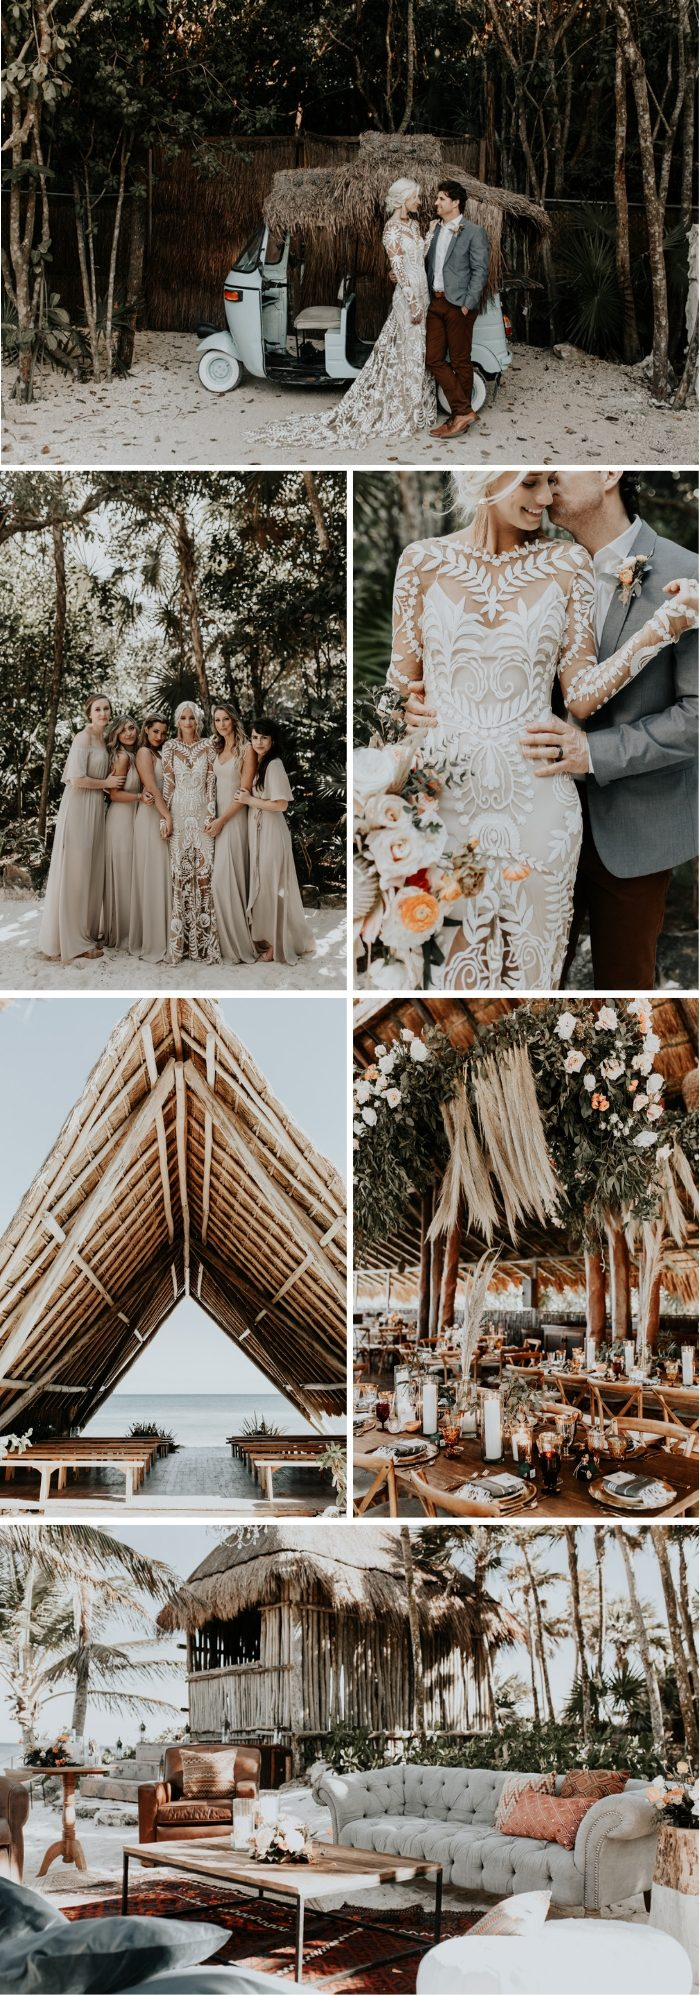 Choice Award Categories—What We're Looking For | Junebug Weddings